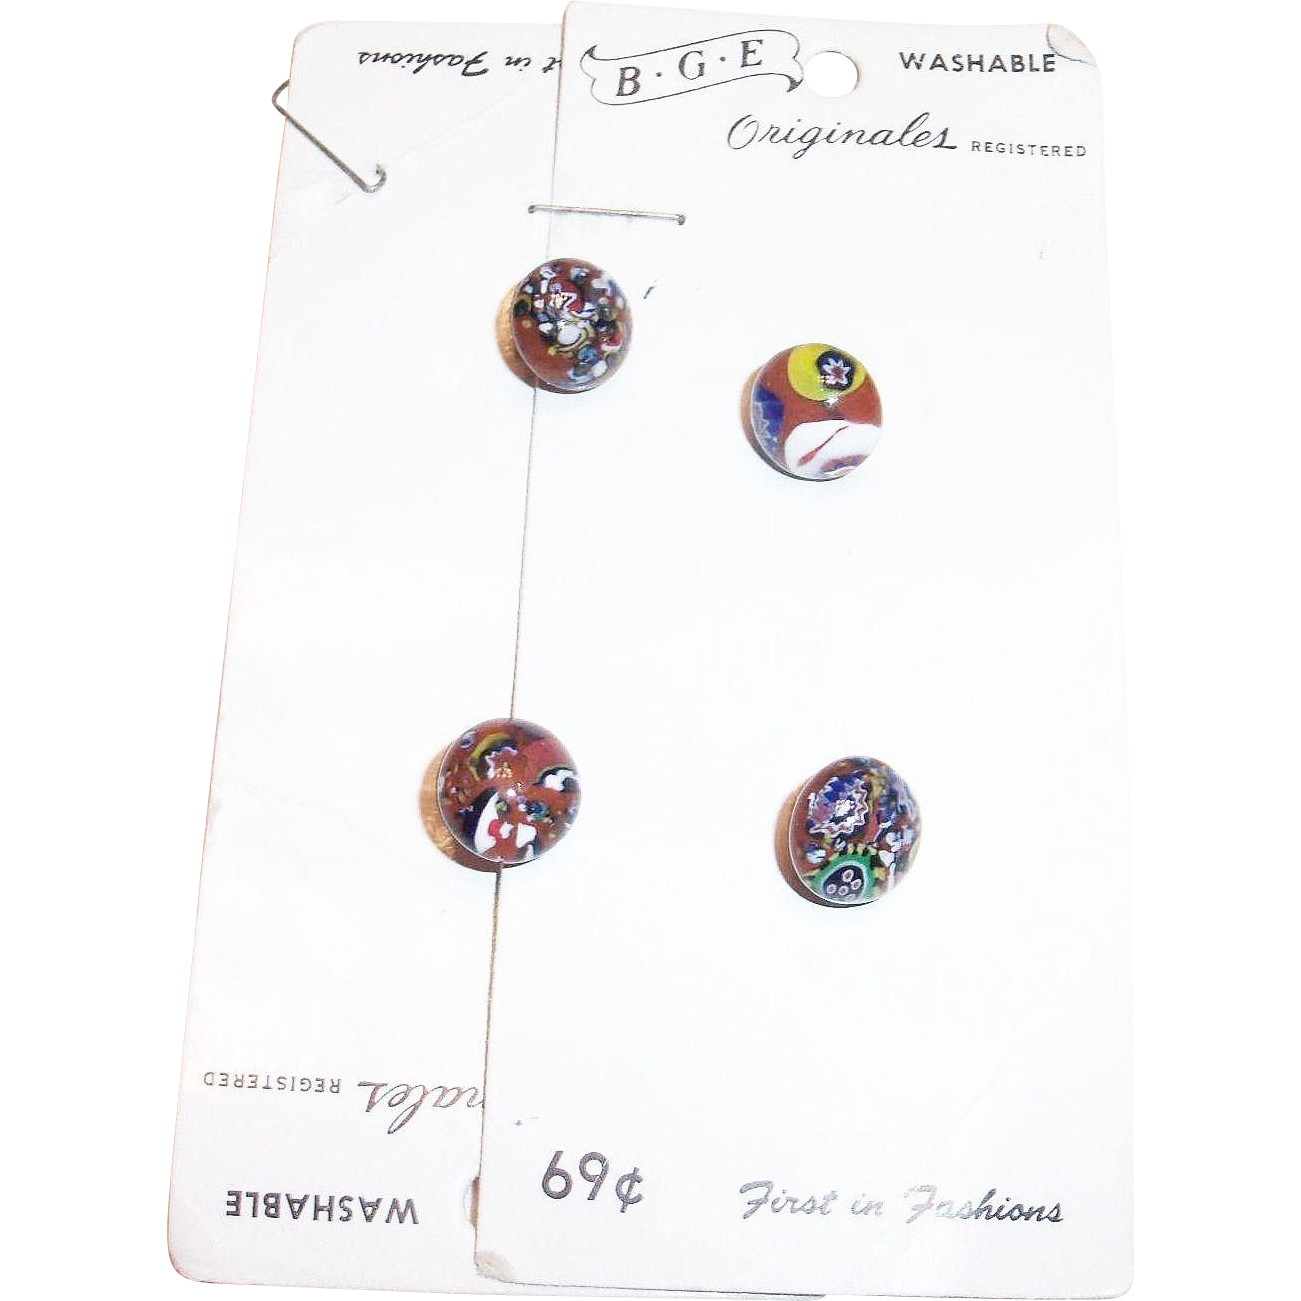 Four Vintage B.G.E. Originals Murano Glass Buttons On Original Cardboard Plackets